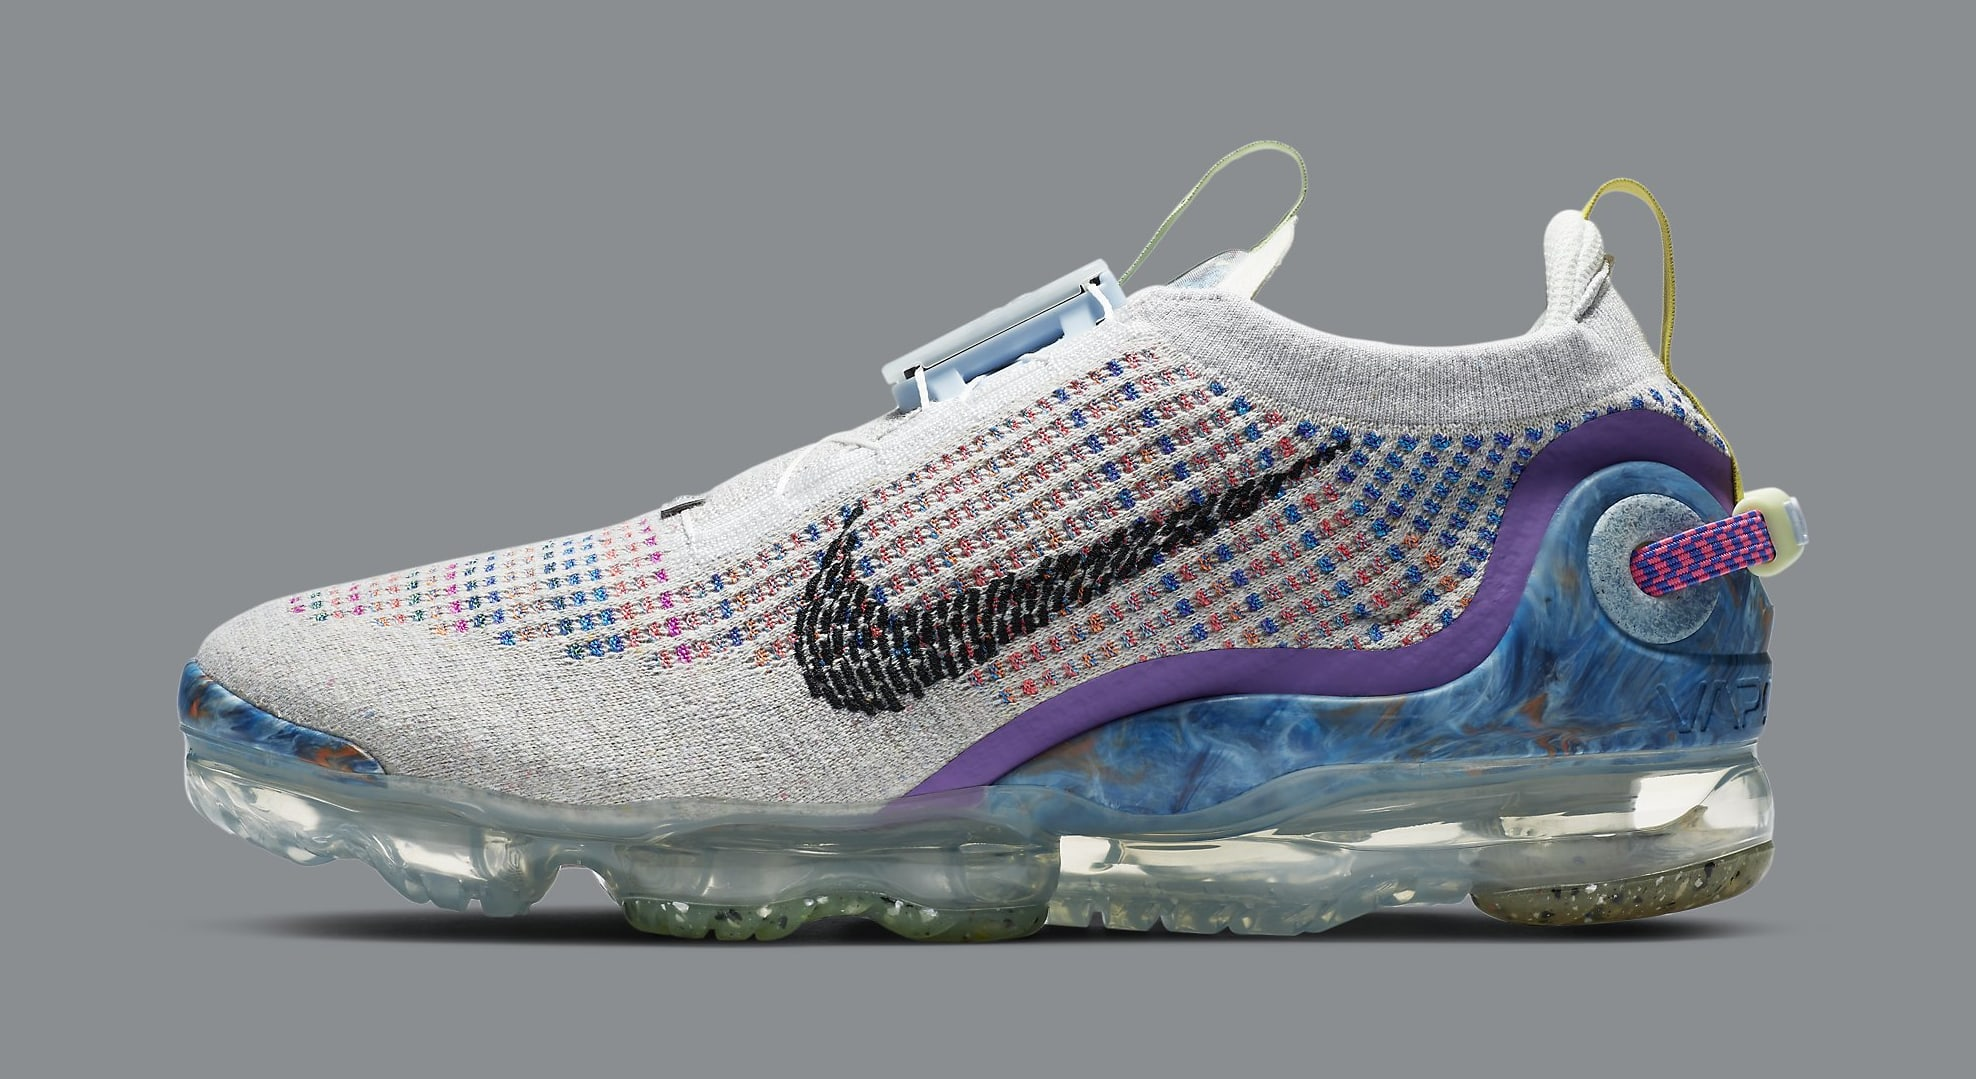 Nike Air VaporMax 2020 CJ6740-001 Lateral